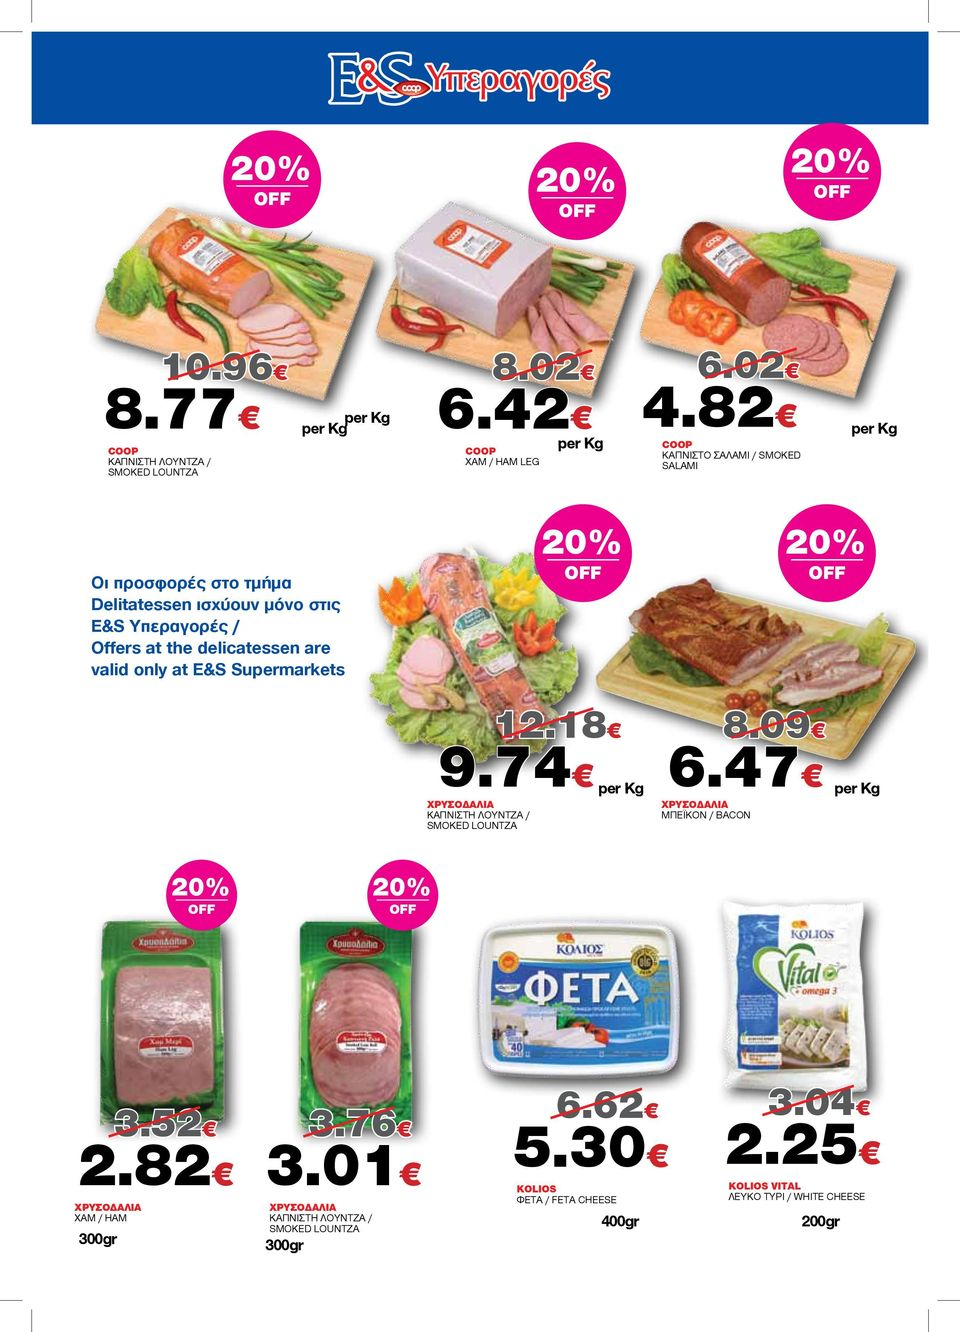 the delicatessen are valid only at E&S Supermarkets 9.74 6.47 ΧΡΥΣΟΔΑΛΙΑ ΚΑΠΝΙΣΤΗ ΛΟΥΝΤΖΑ / SMOKED LOUNTZA 12.18 8.